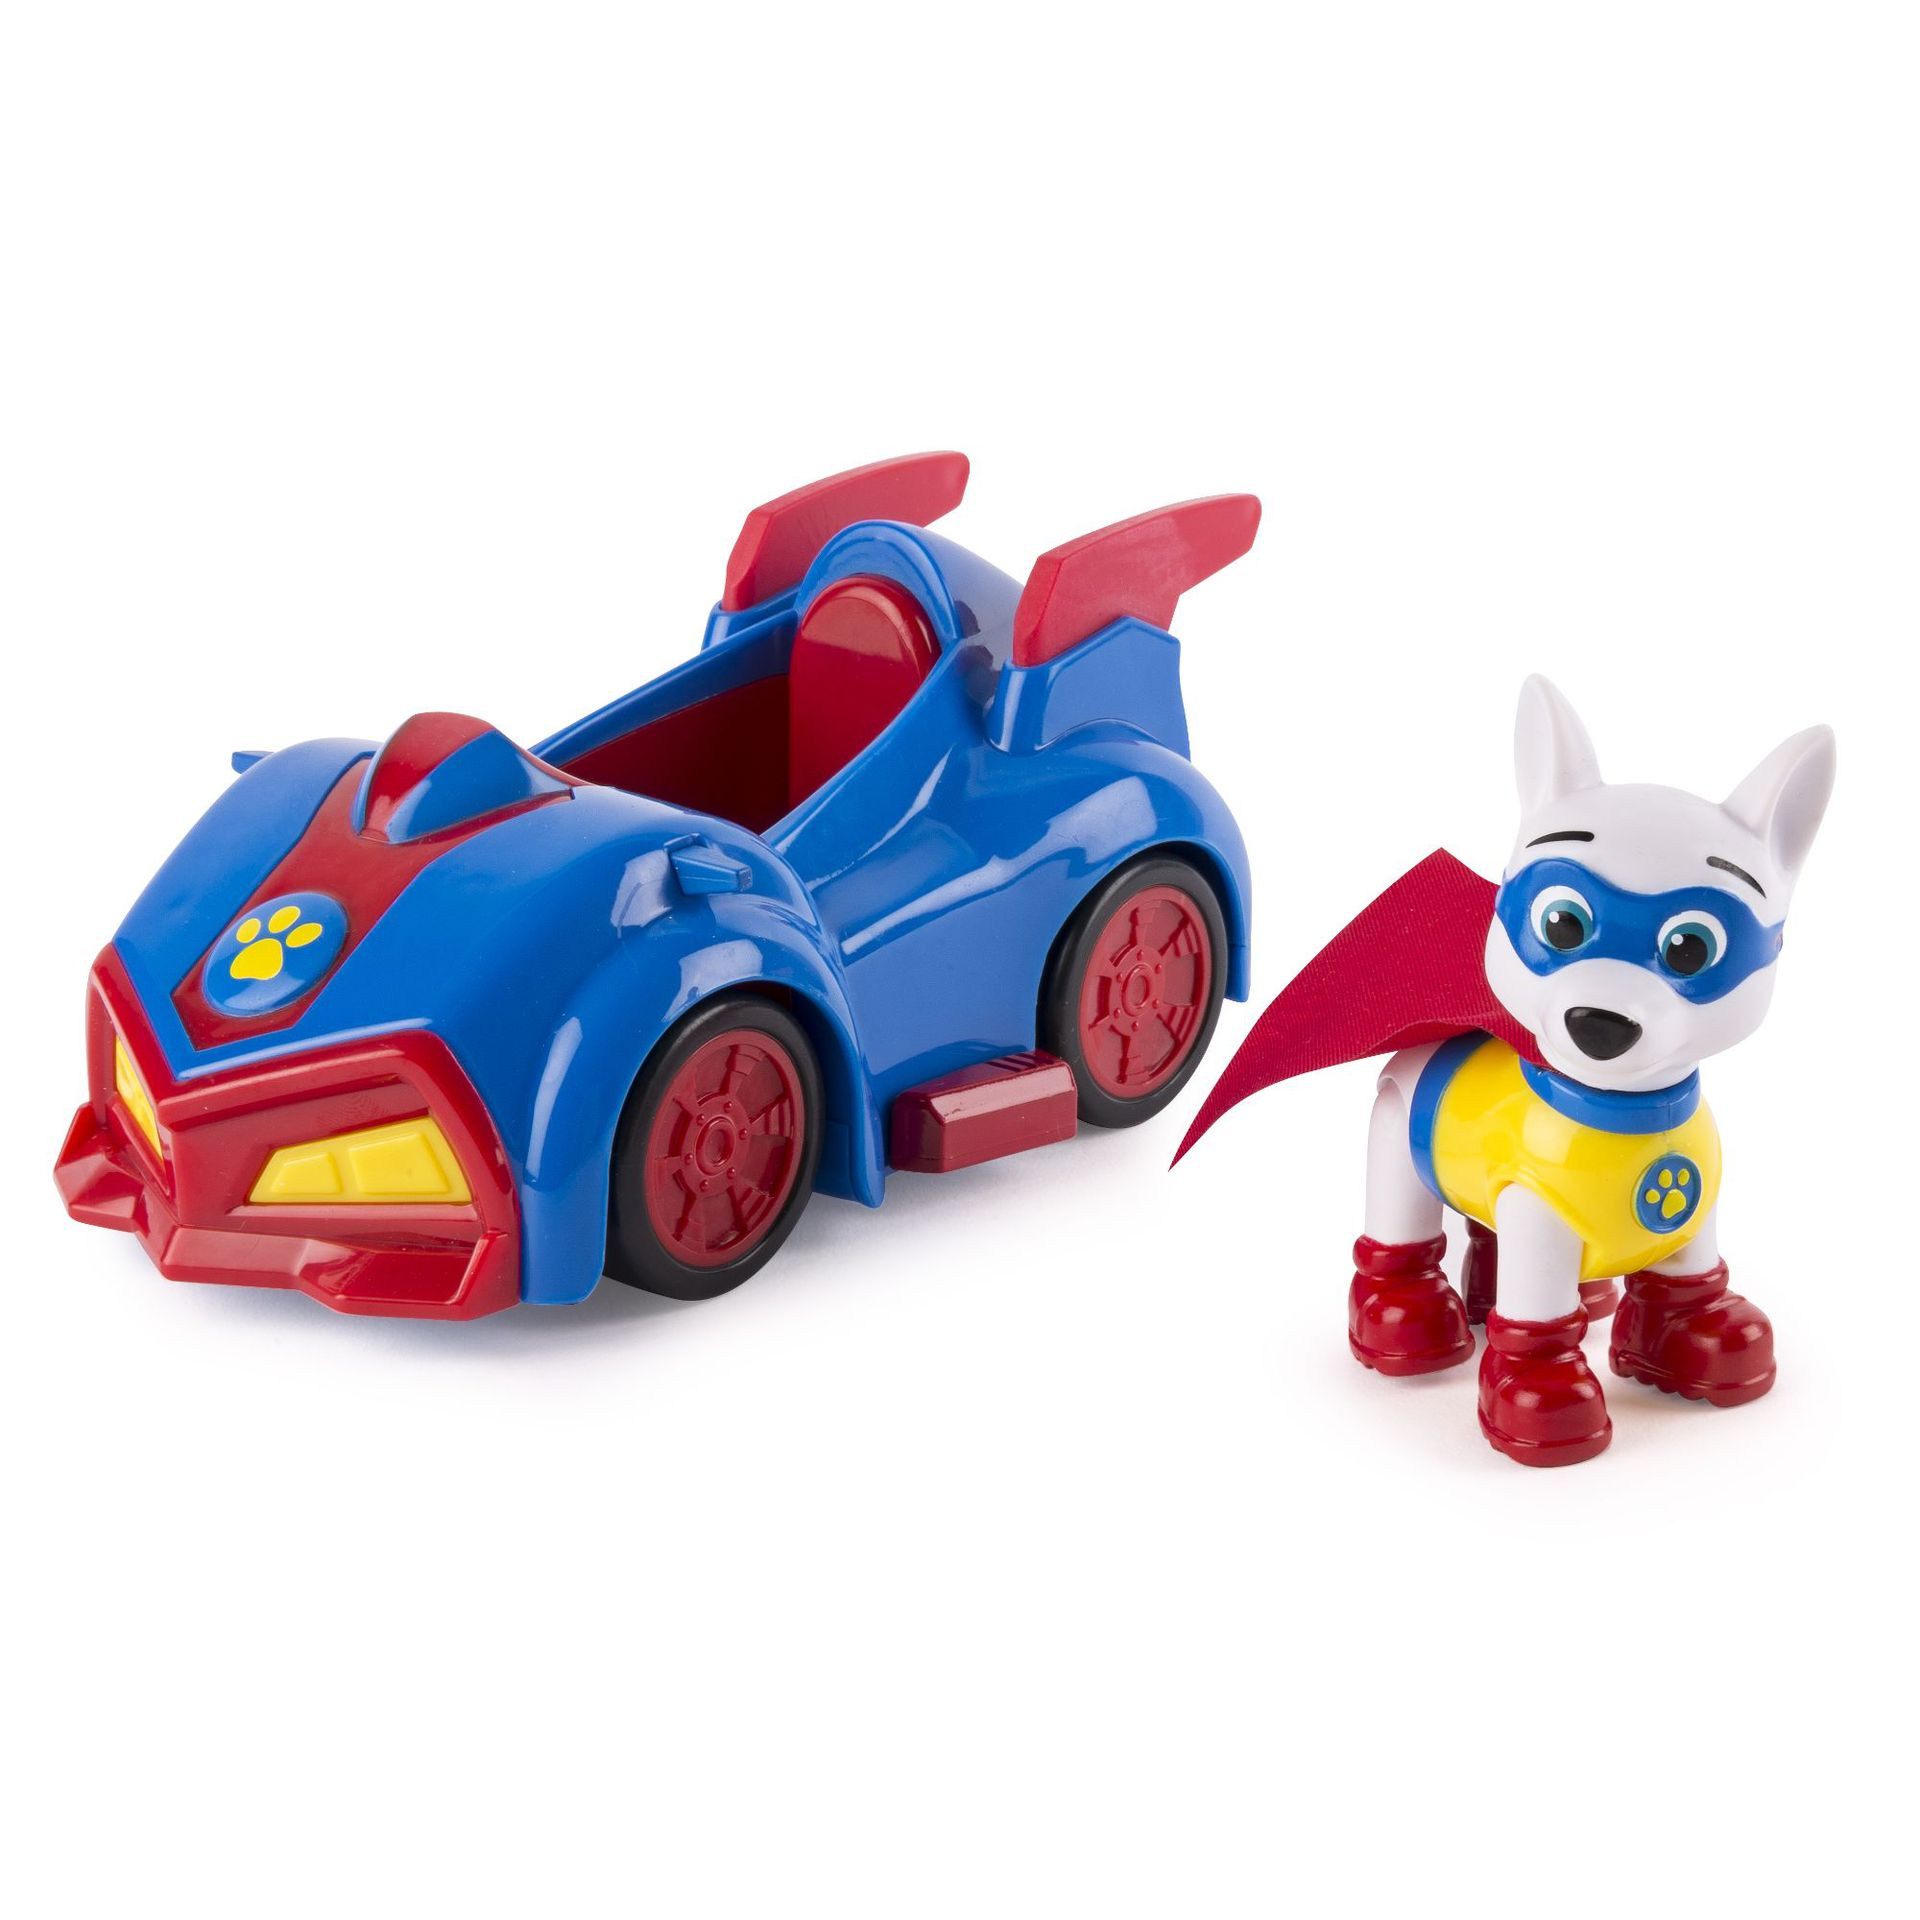 2019 New Genuine Paw Patrol Apollo Tracker Everest Vehicle And Figure Toy Puppy Dog Patrol Car Patrulla Patrulla Children Toy